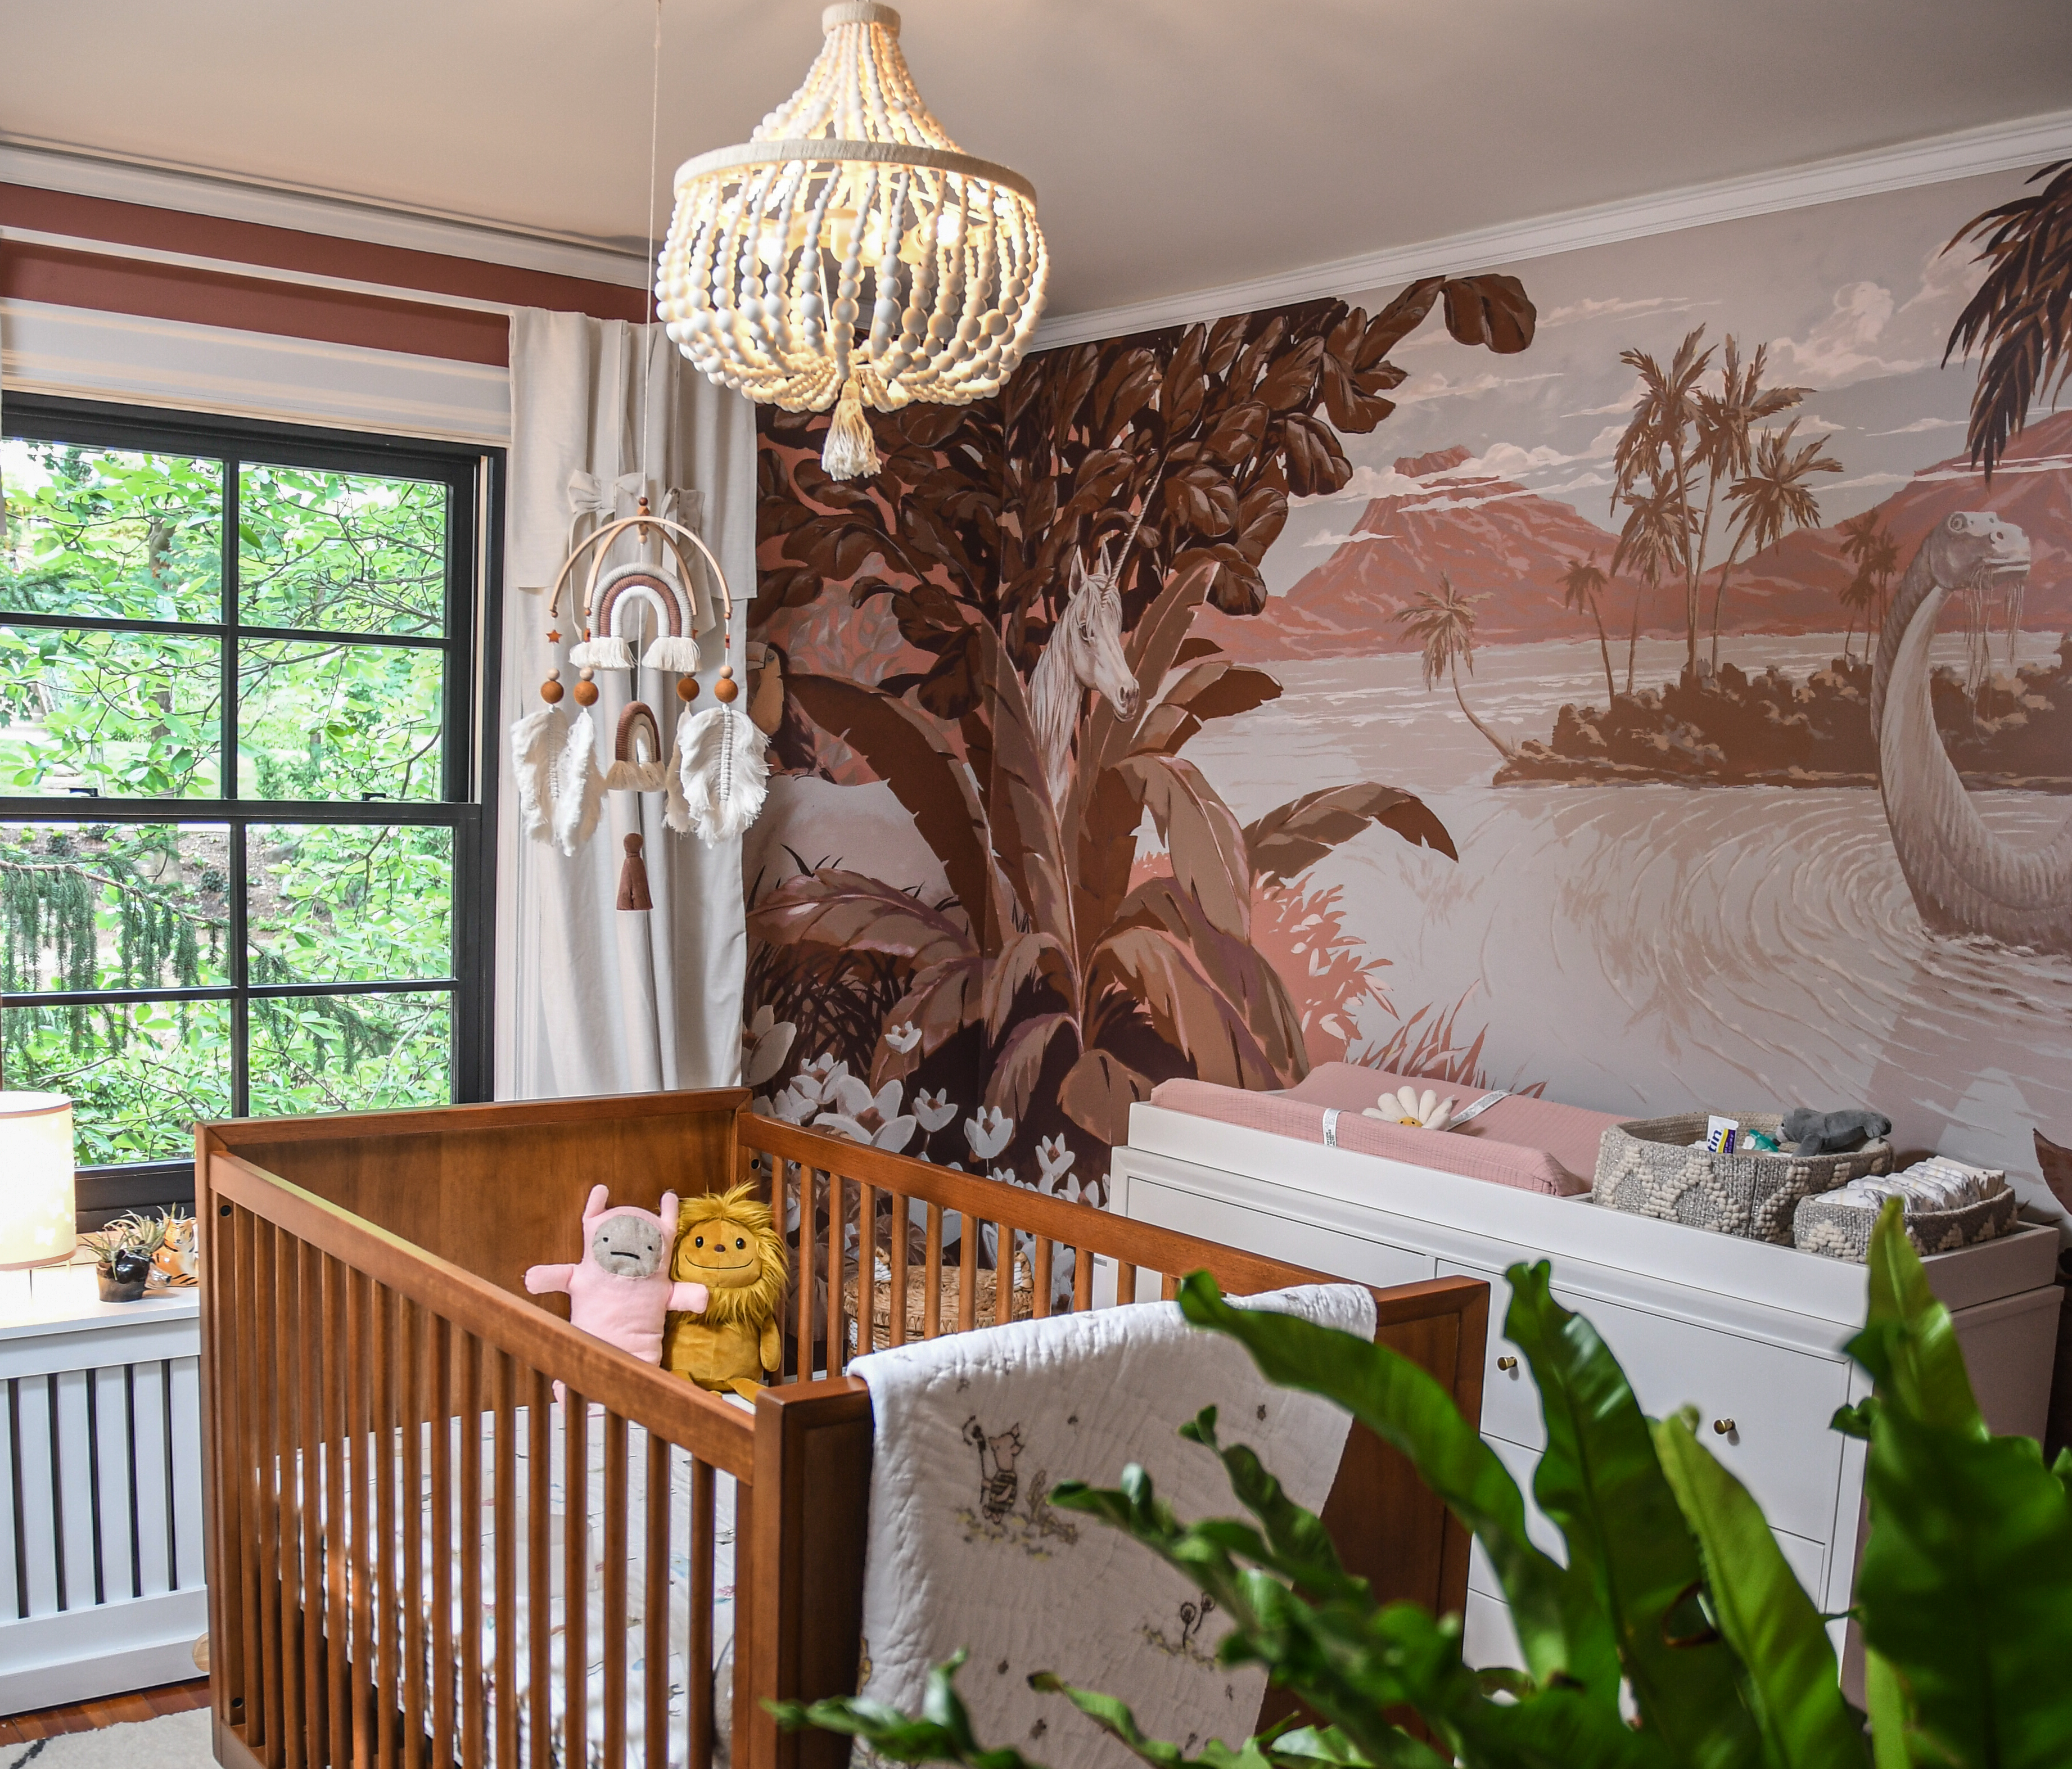 Hilton Carter Baby Nursery Tout, with mural and crib